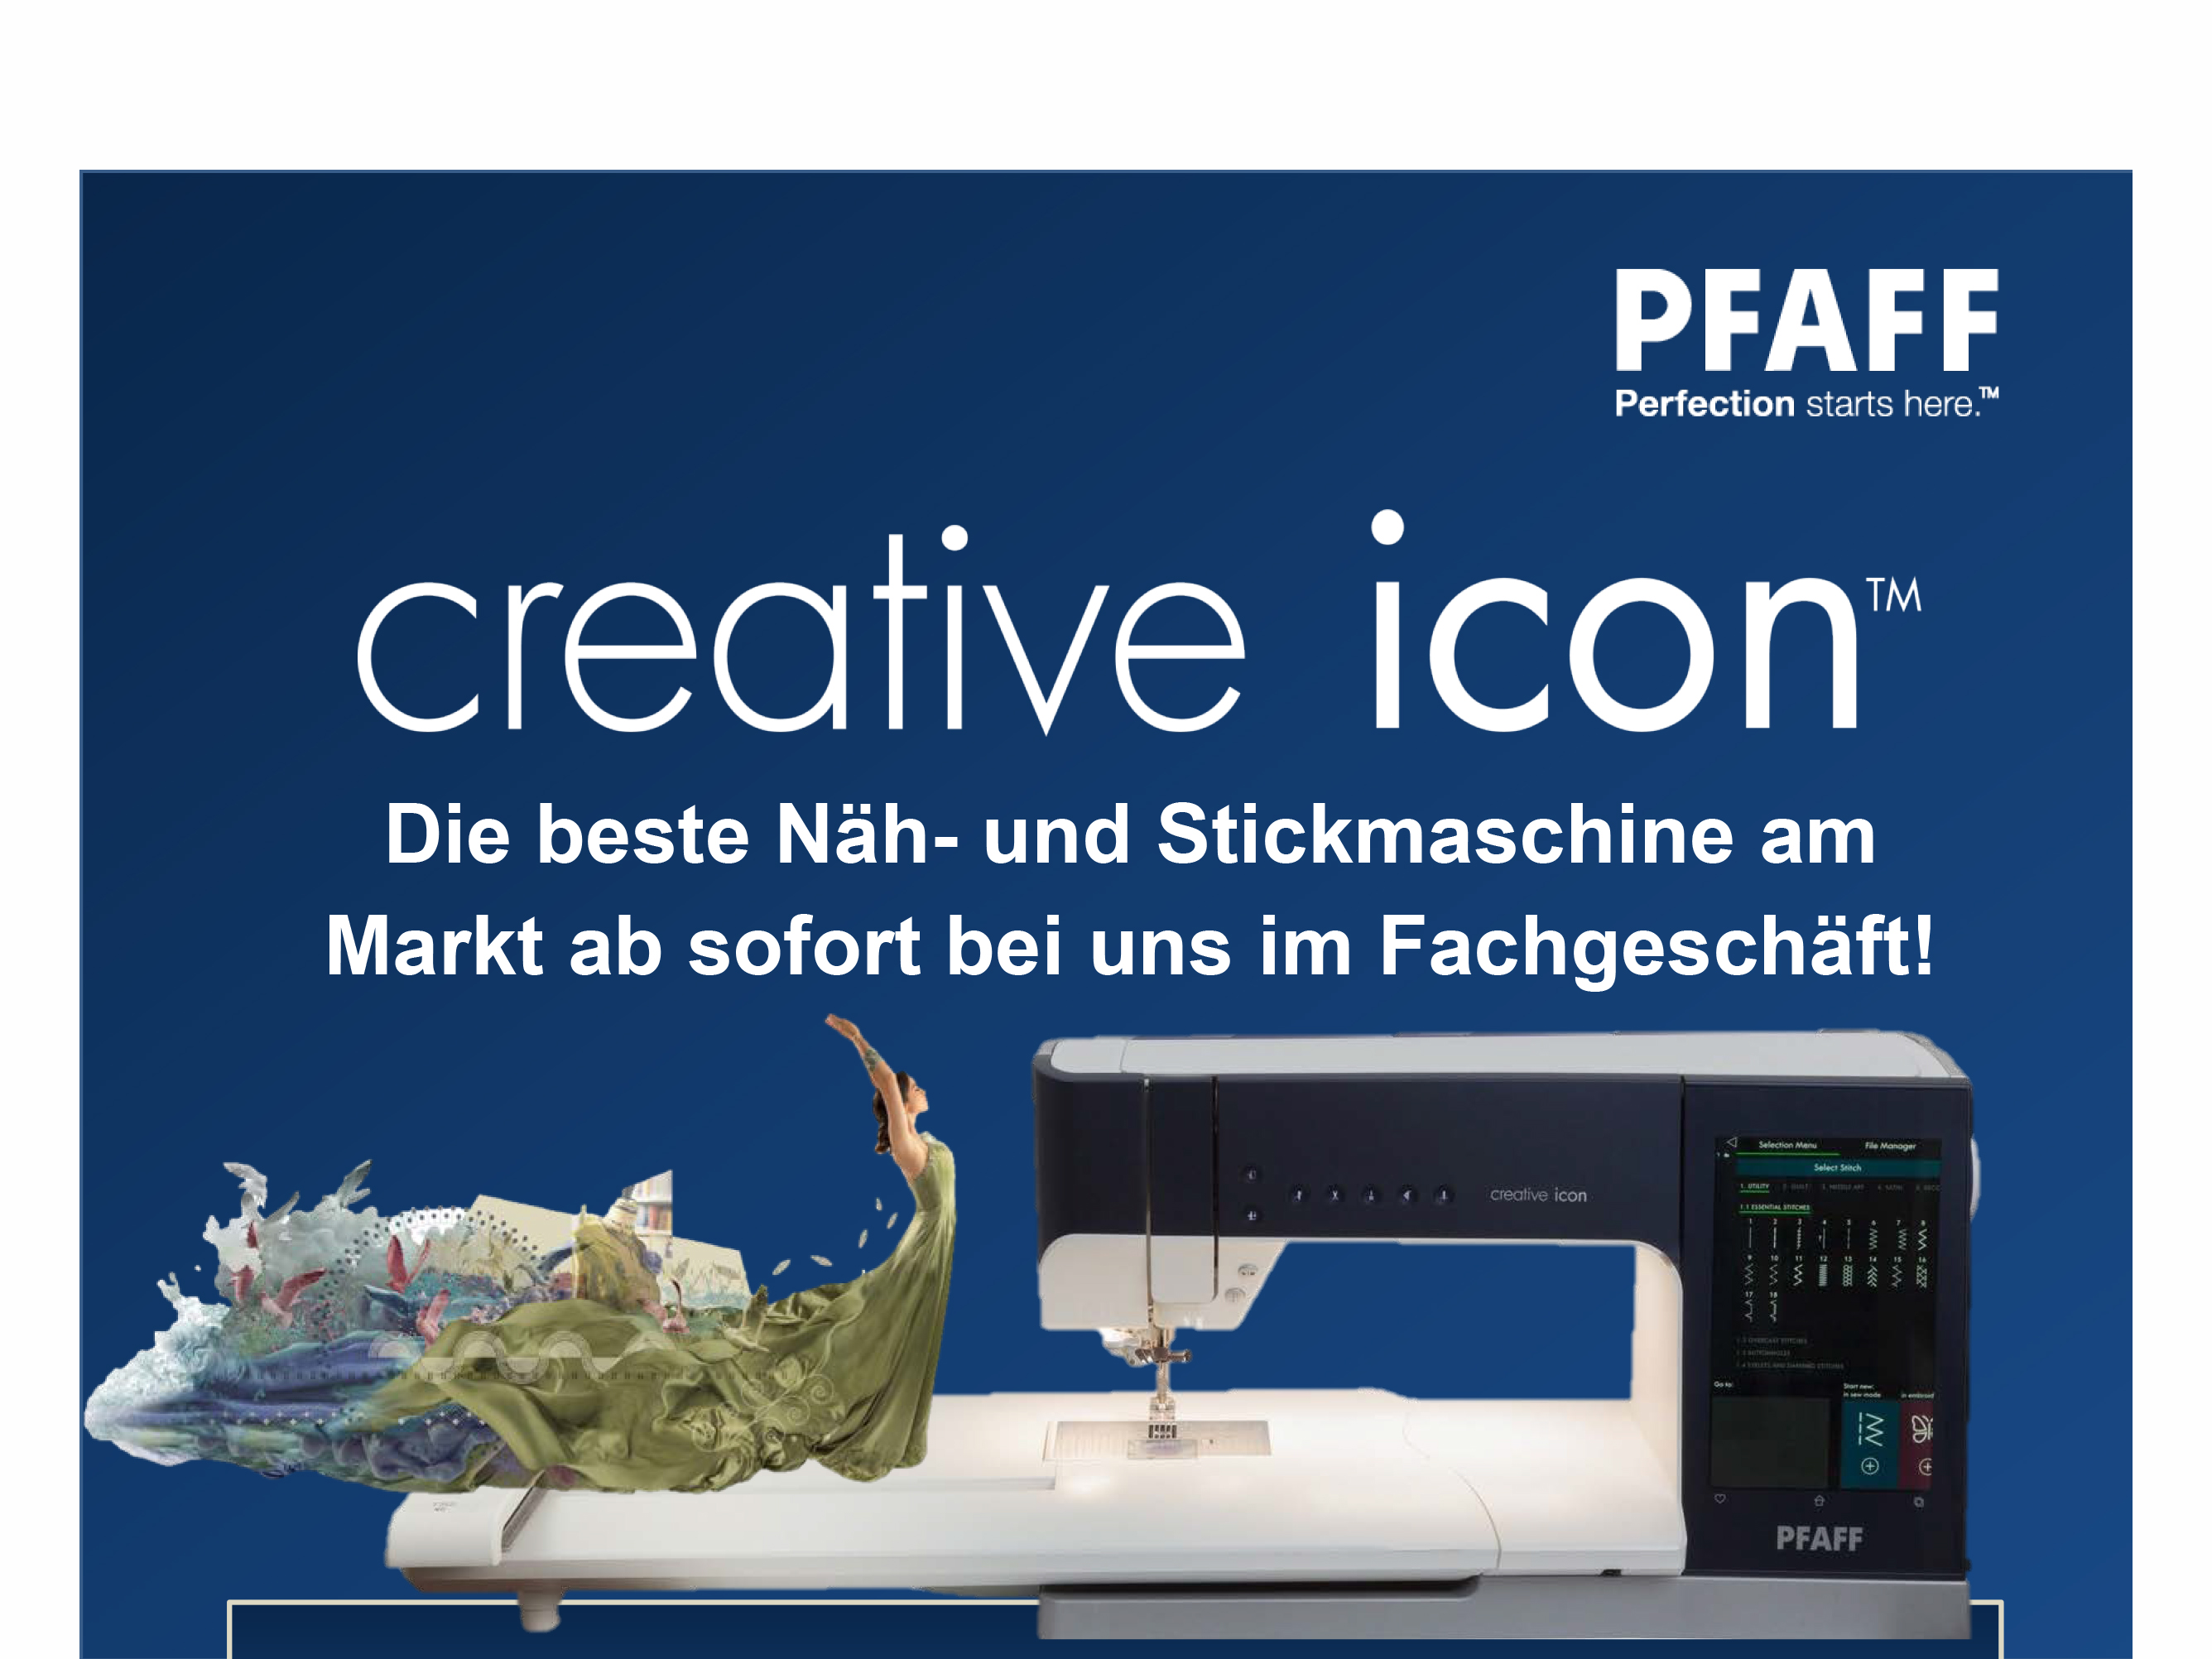 PFAFF creative icon